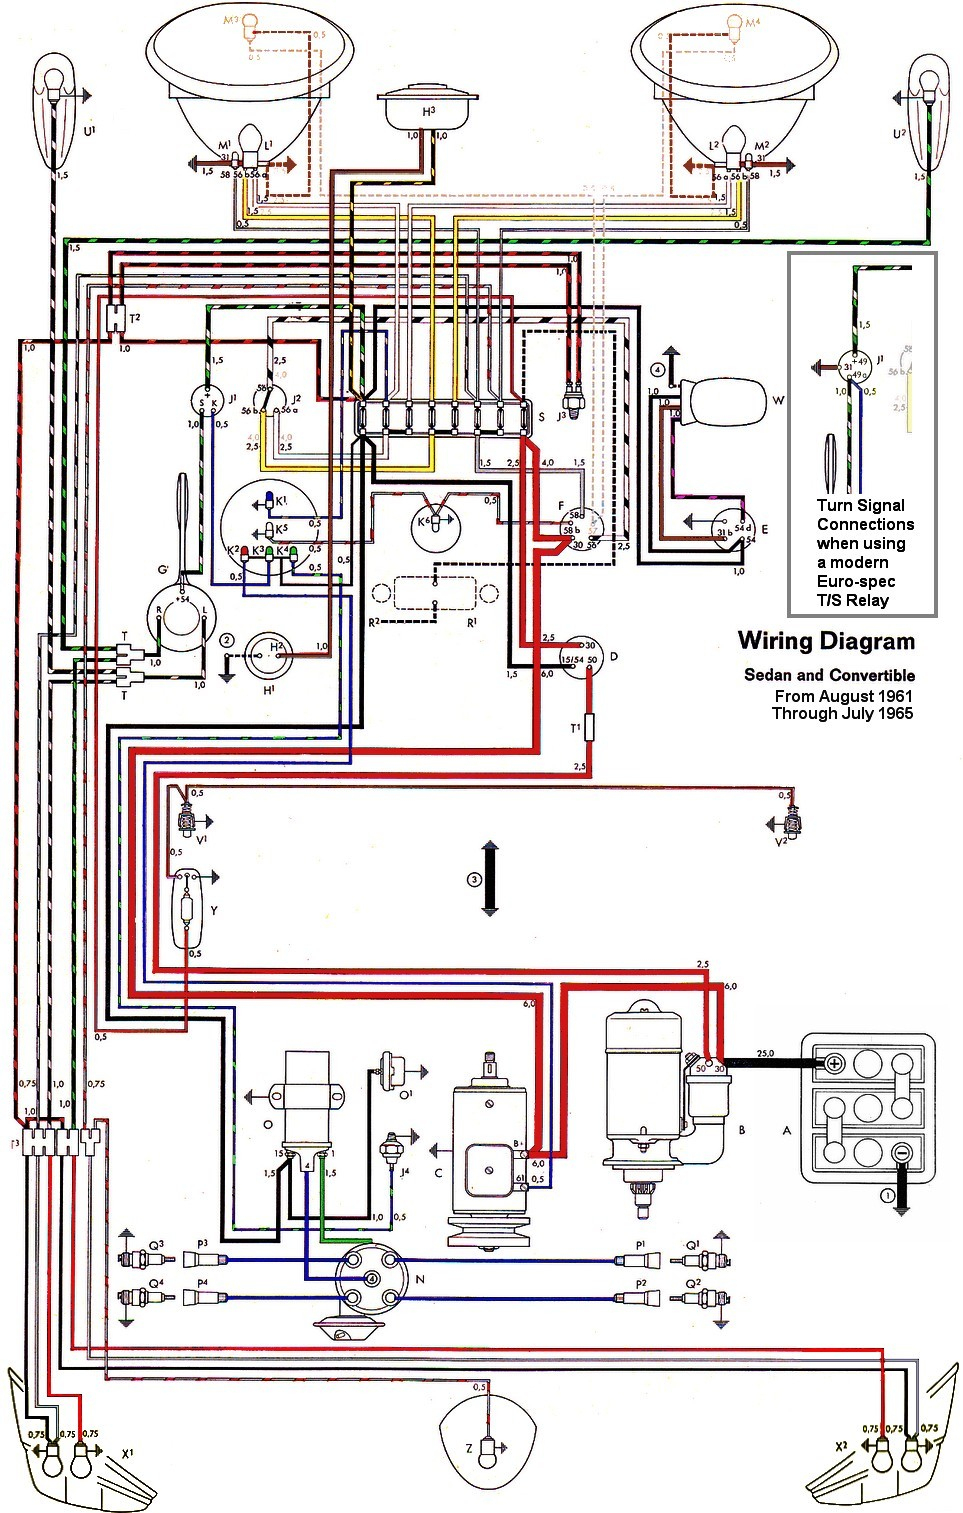 Thesamba :: Type 1 Wiring Diagrams - Vw Wiring Diagram